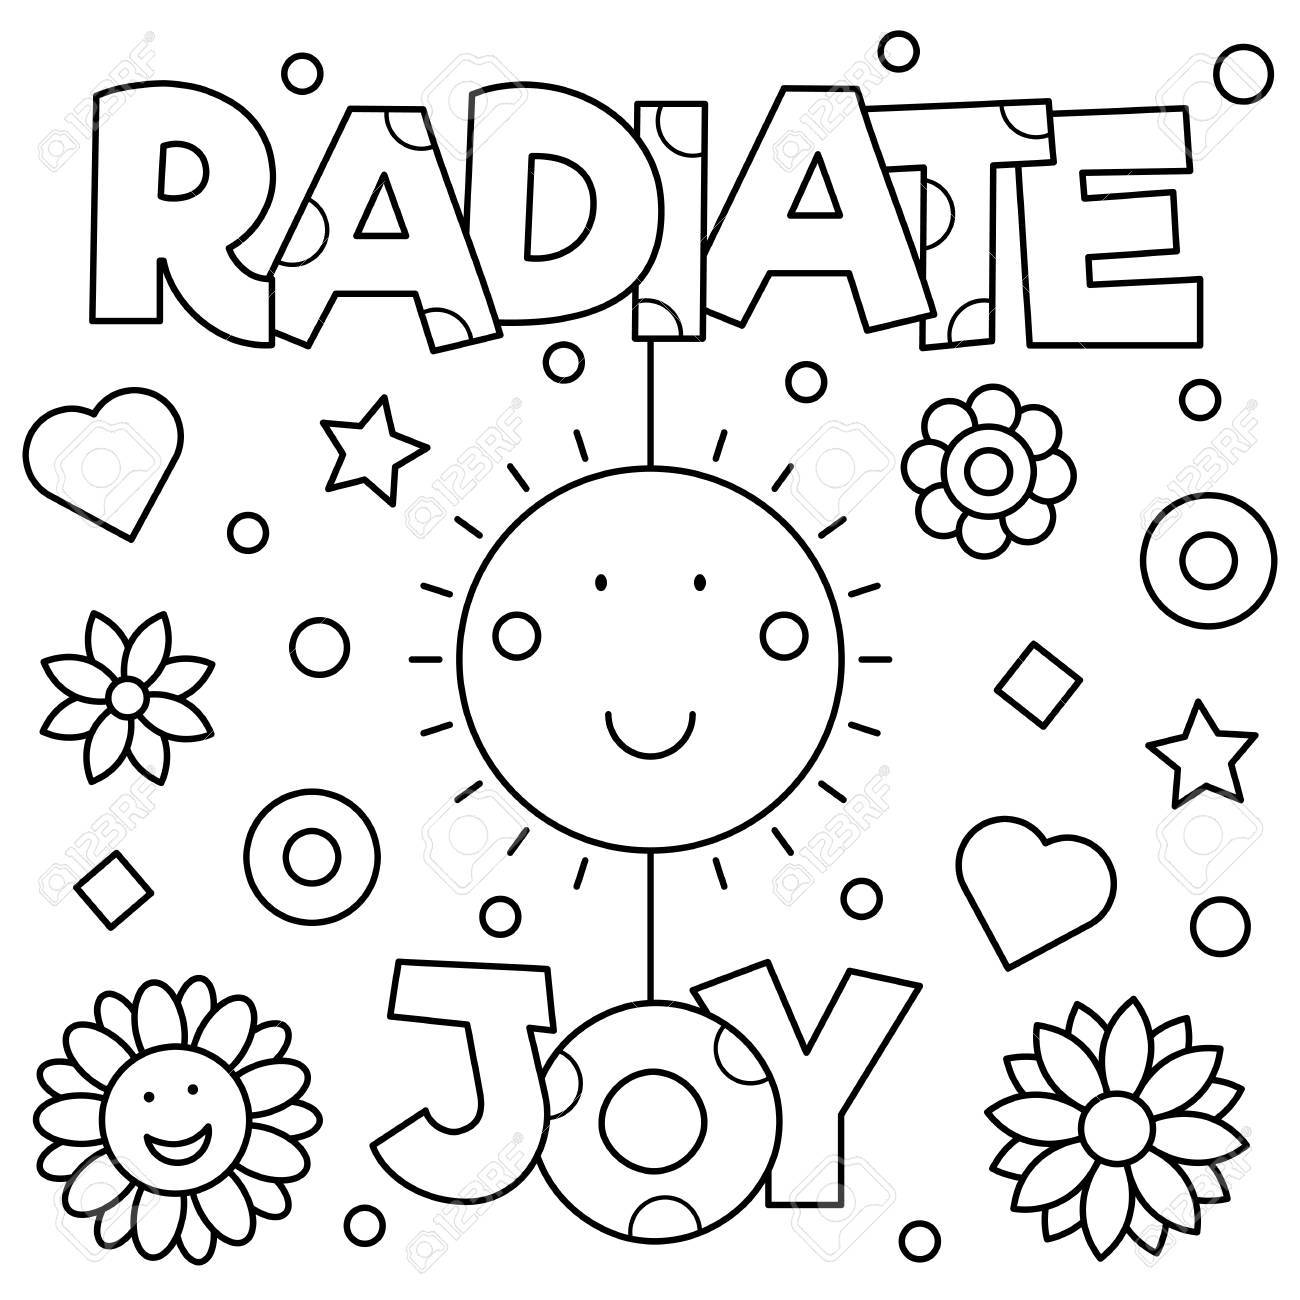 Radiate Joy Coloring Page. Vector Illustration. Royalty Free ...